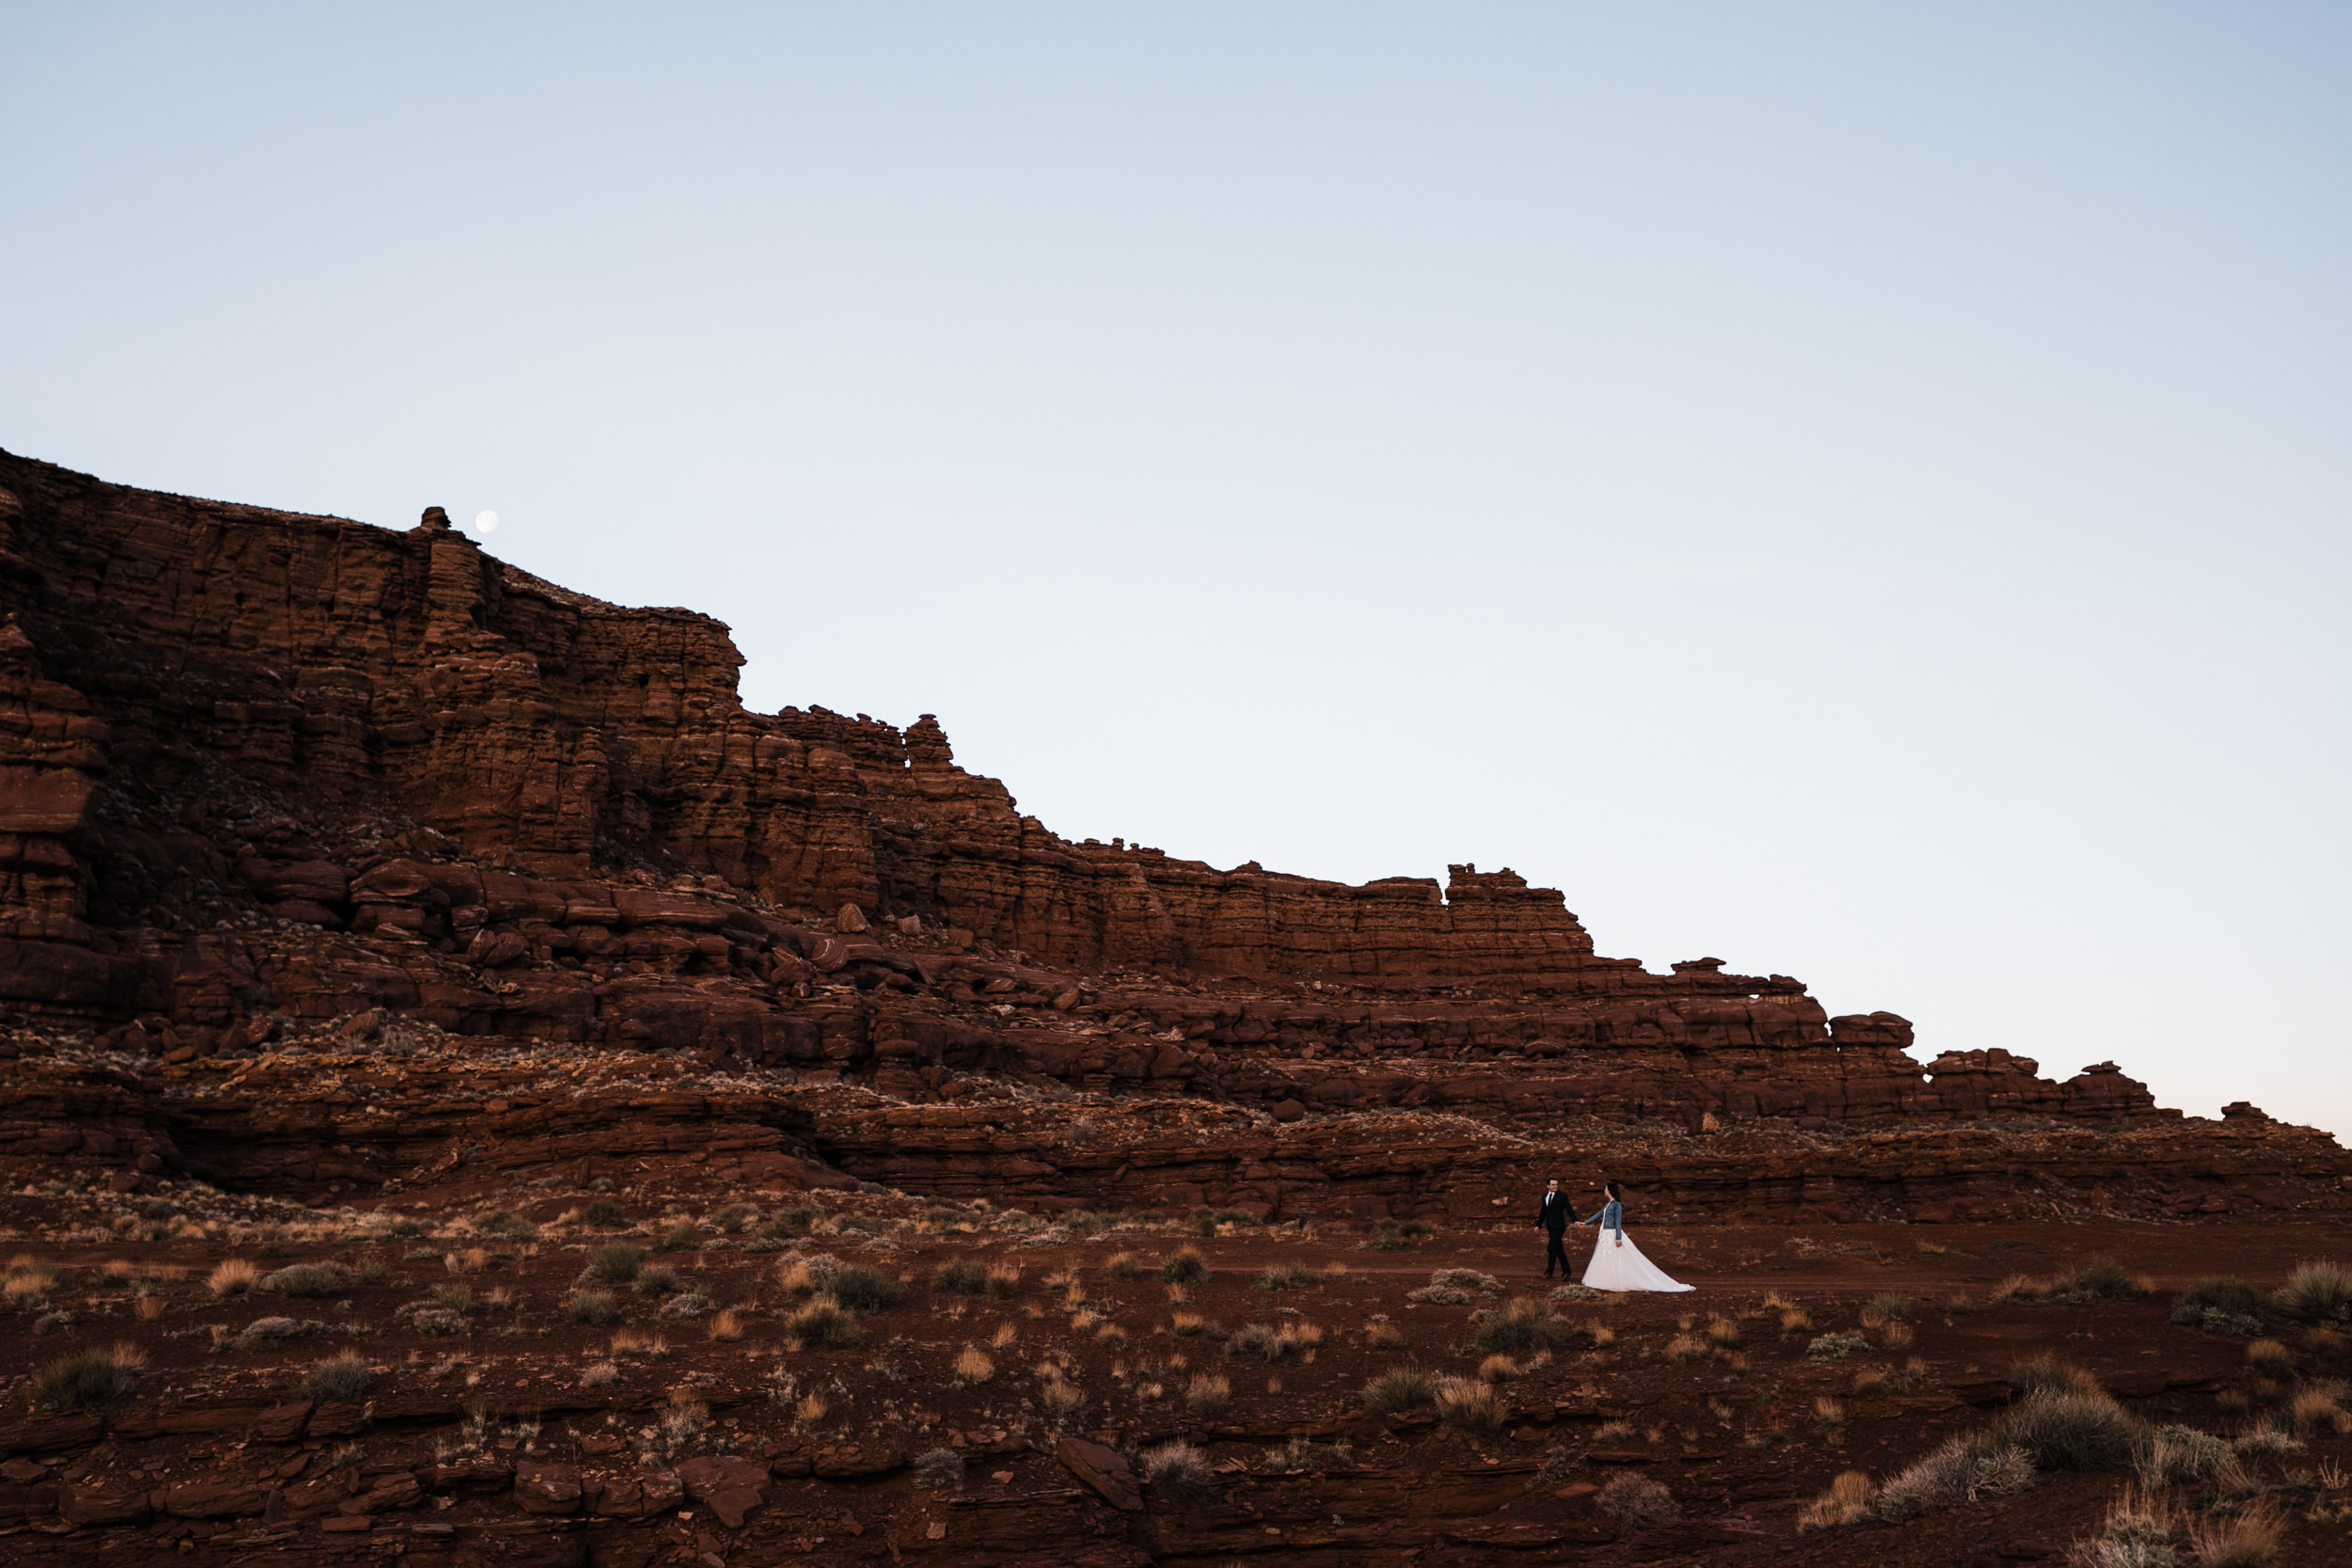 Taking a step back to take in the beautiful scenery Moab has is a perfect start to your wedding day.